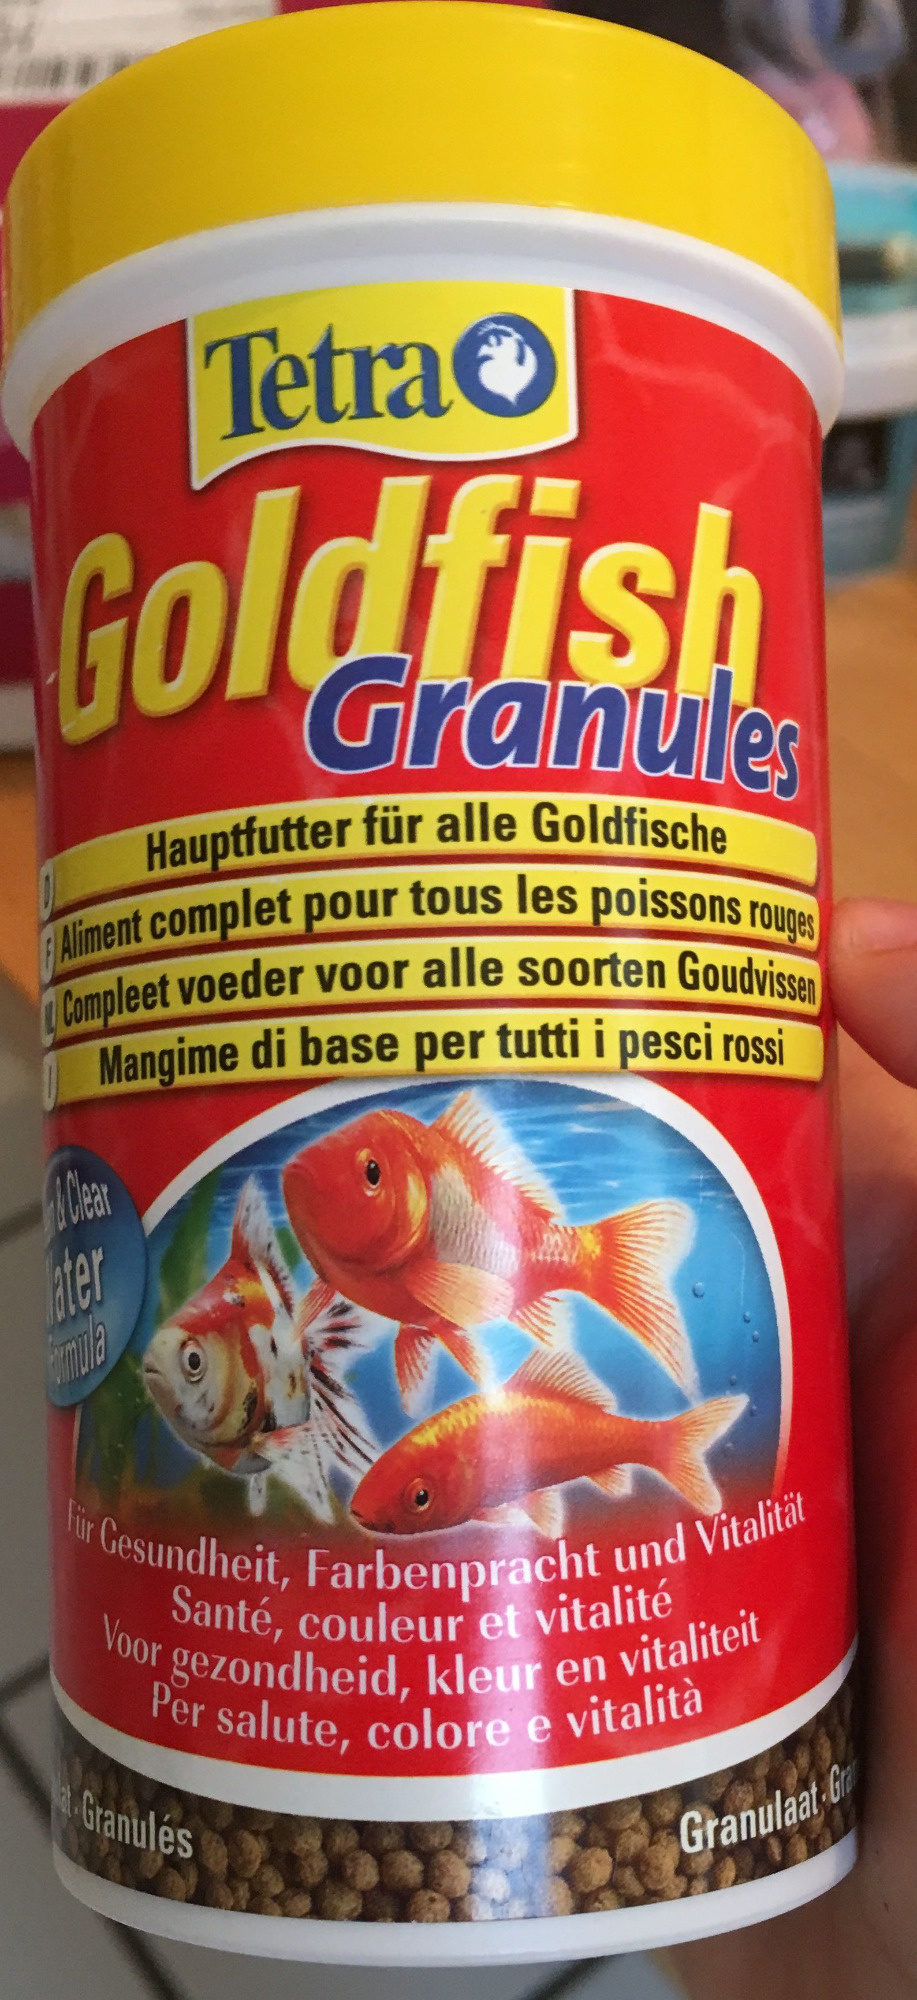 Goldfish Granules - Aliment Complet Poissons Rouges - Product - fr